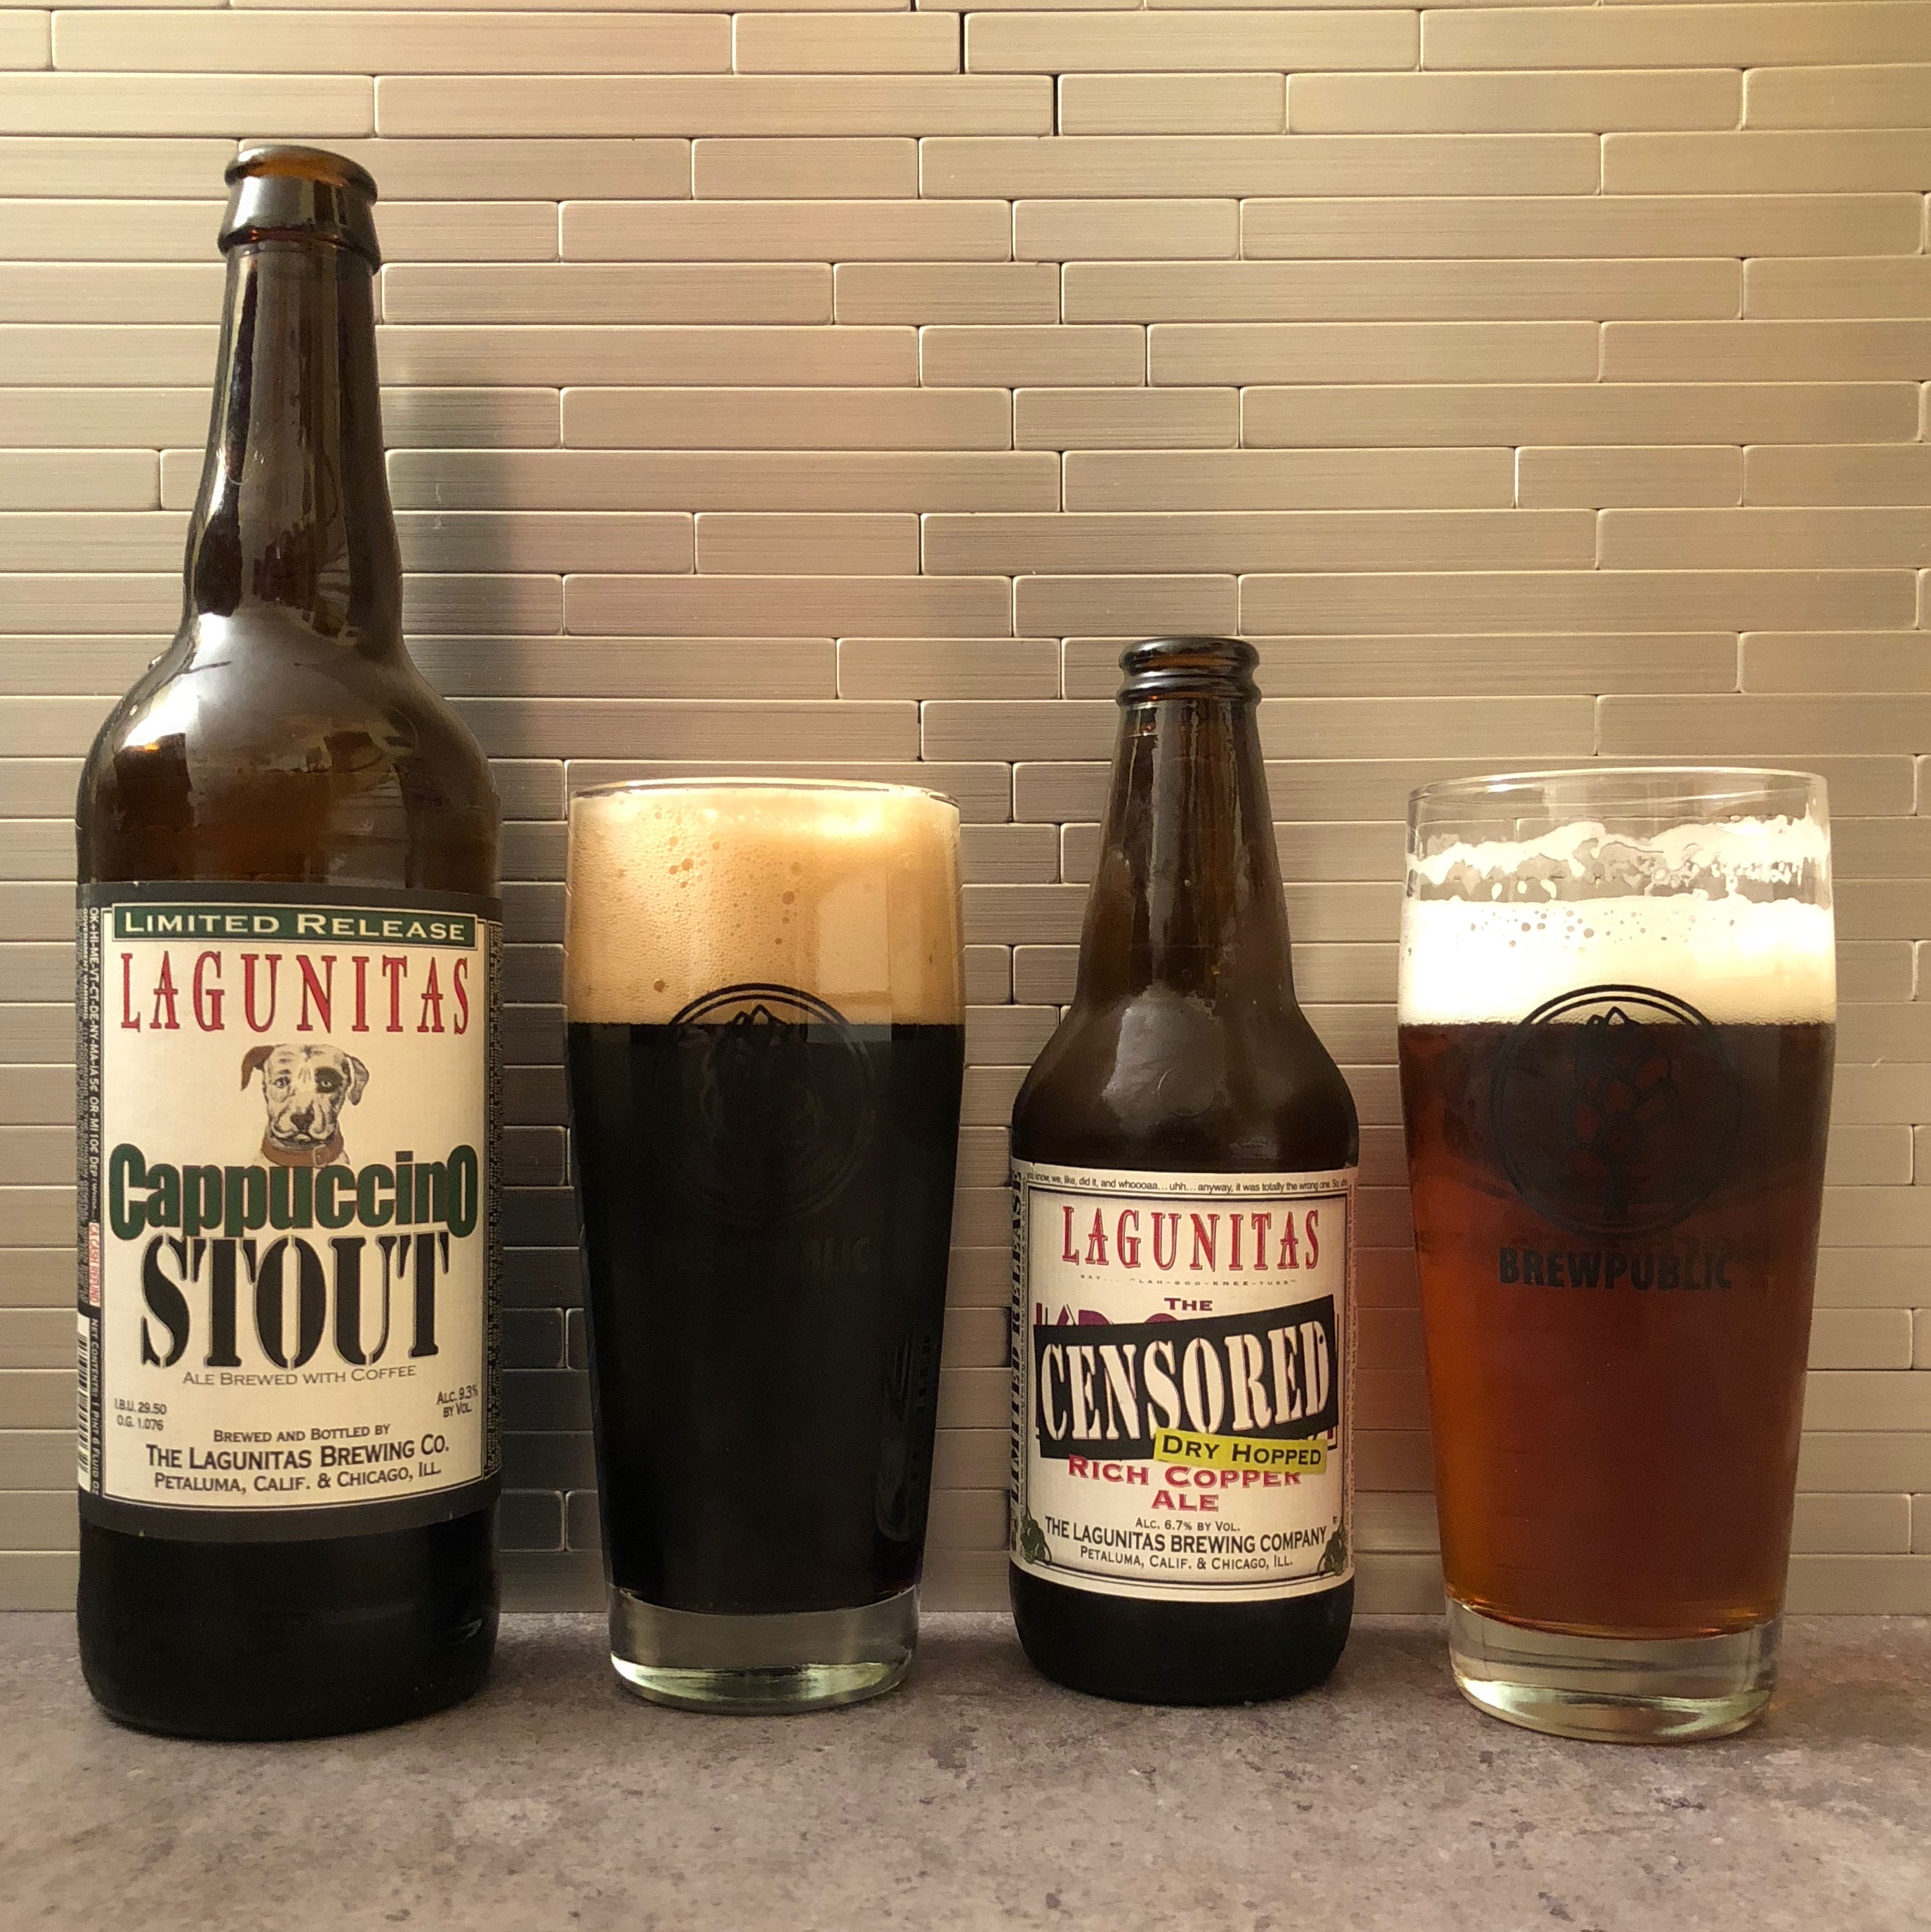 Lagunitas Brewing's Cappuccino Stout and Dry Hopped Censored Ale